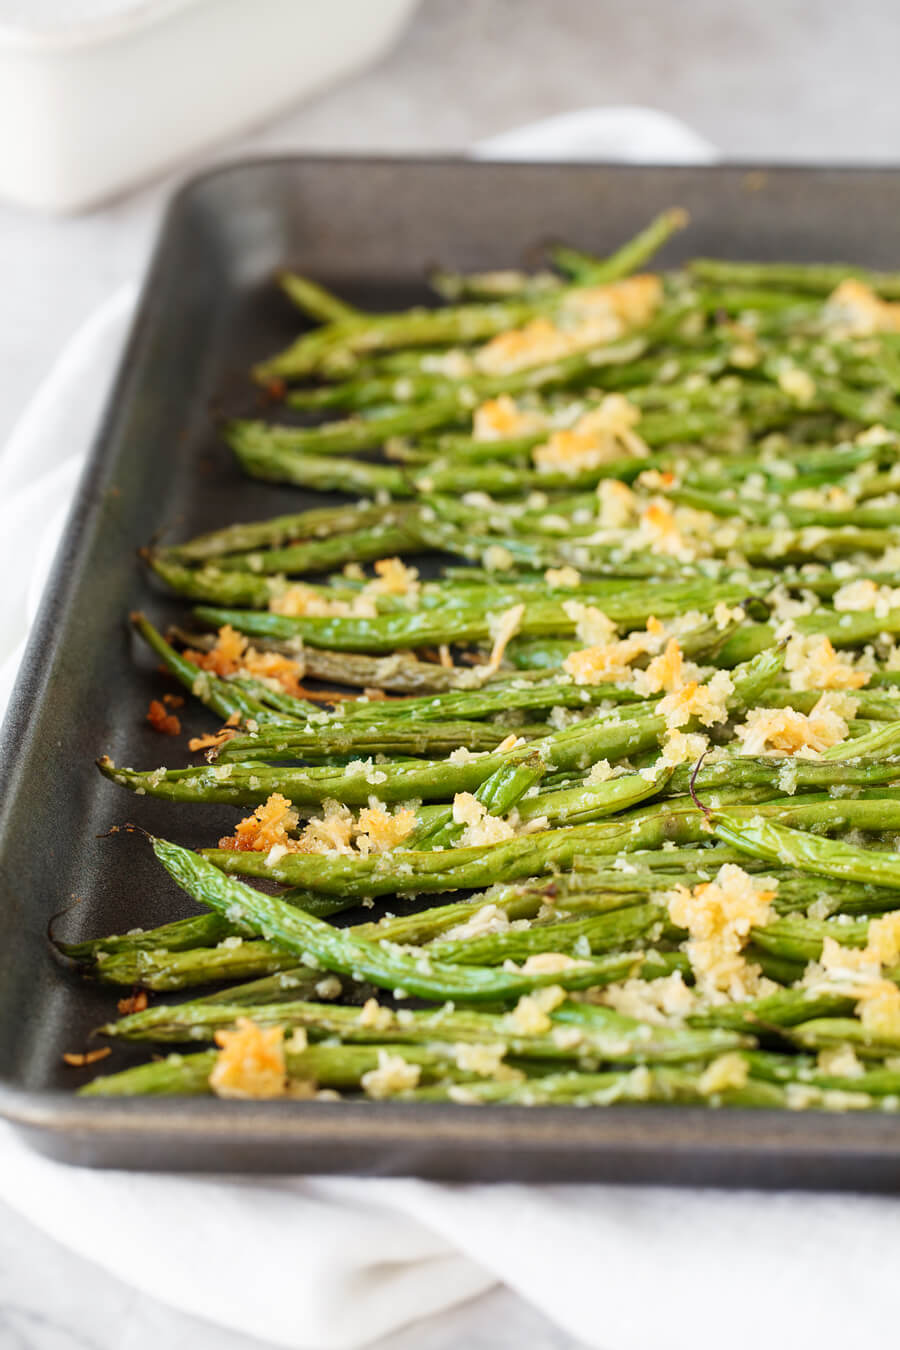 #12 Roasted Green Beans with Parmesan